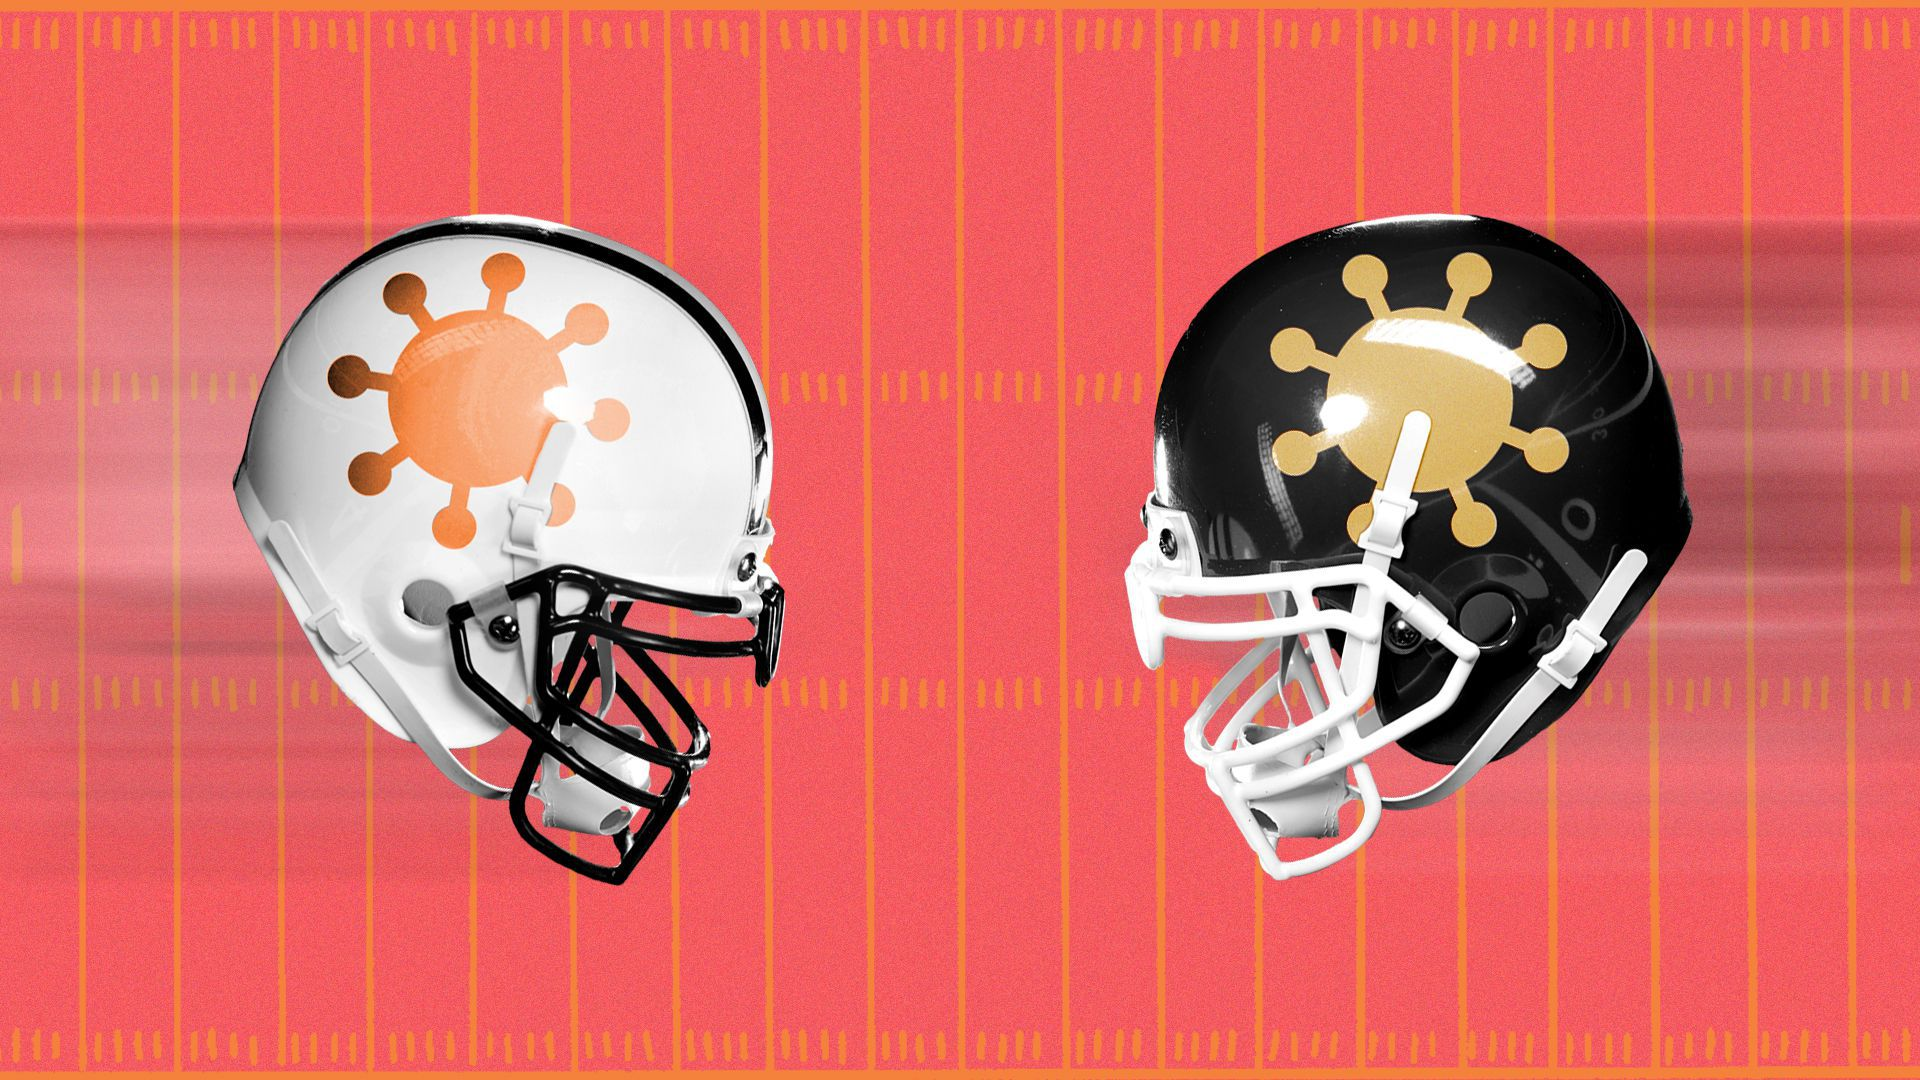 Illustration of two football helmets with coronavirus logos on them flying at each other.